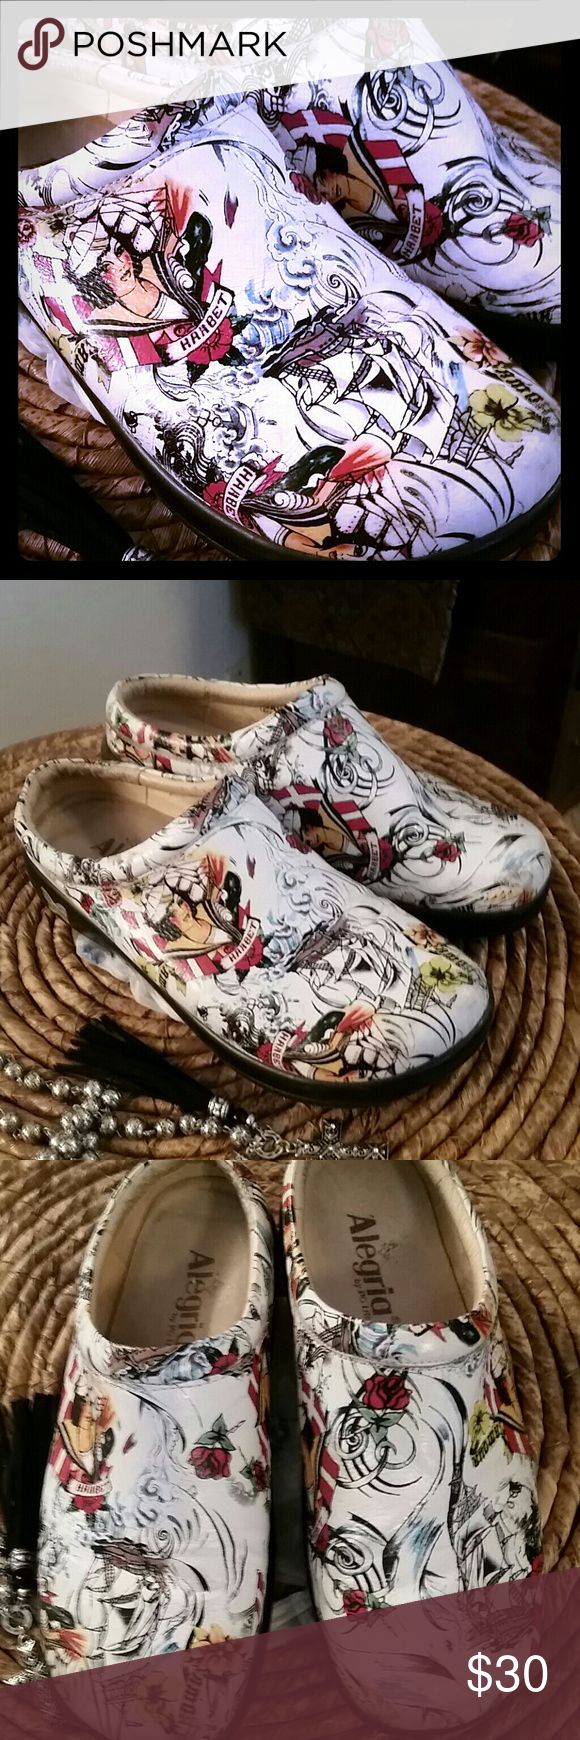 ALEGRIA SAILOR JERRY CLOGS These Super Stylish Homage to Famous Tattoo Artist Sailor Jerry! Super Comfy, Great for work and or travel! Alegria Shoes Mules & Clogs